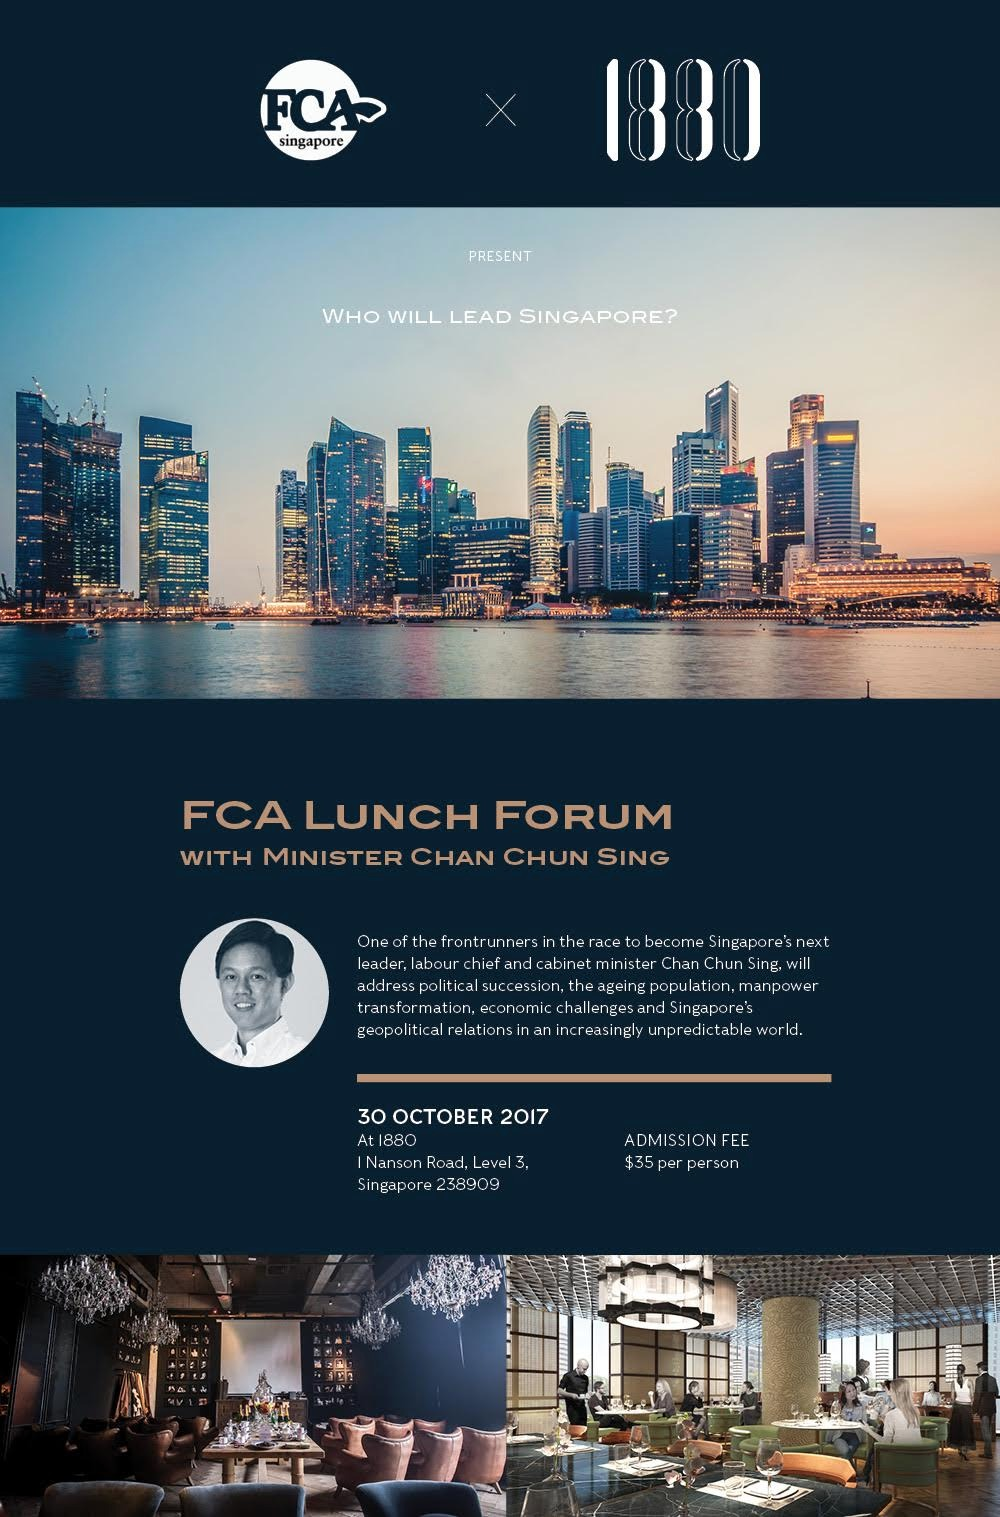 FCA lunch forum with Minister Chan Chun Sing